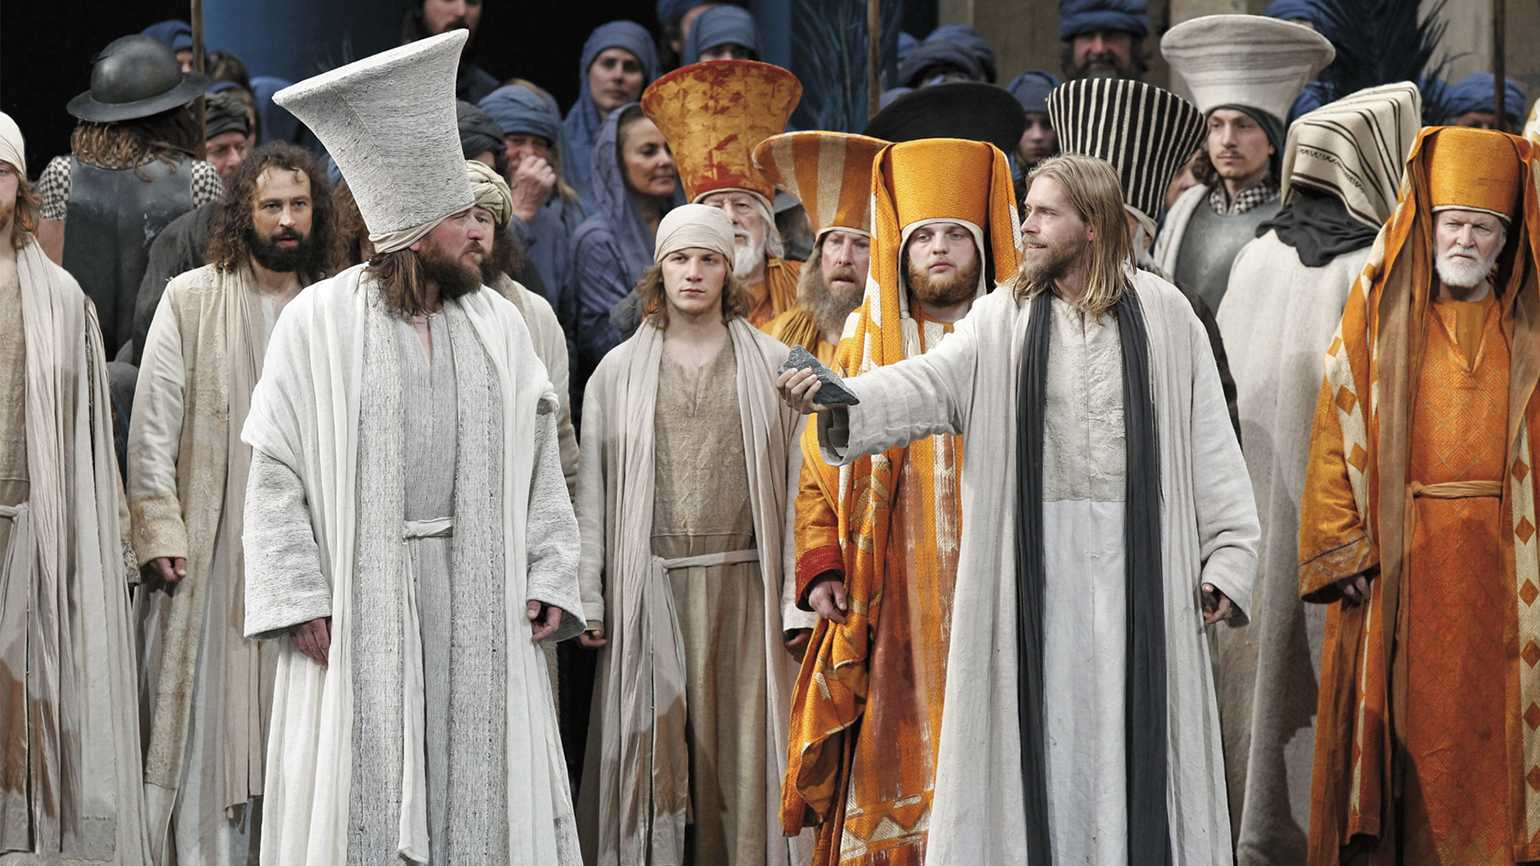 Citizens of Oberammergau performing the centuries-old play in 2010